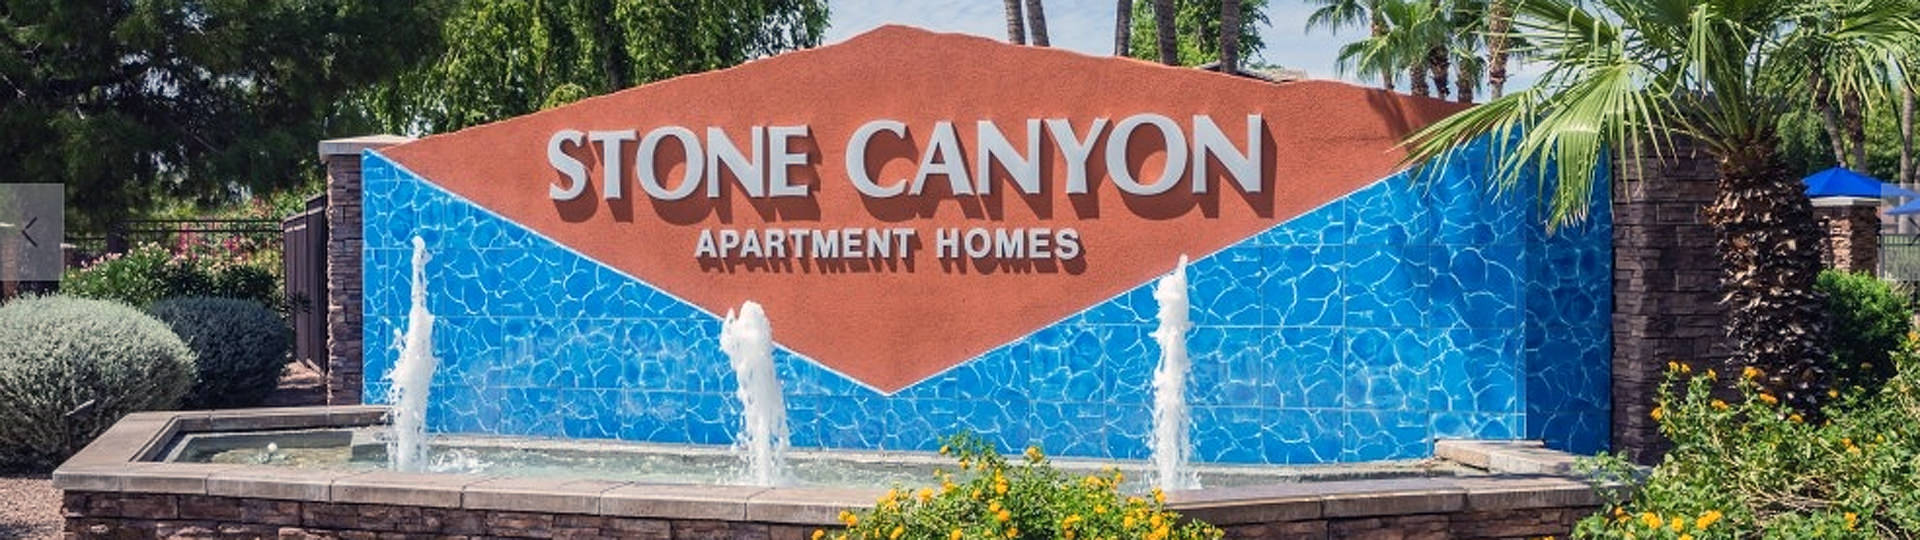 stone canyon apartments sale delivers roi of over 95 creic